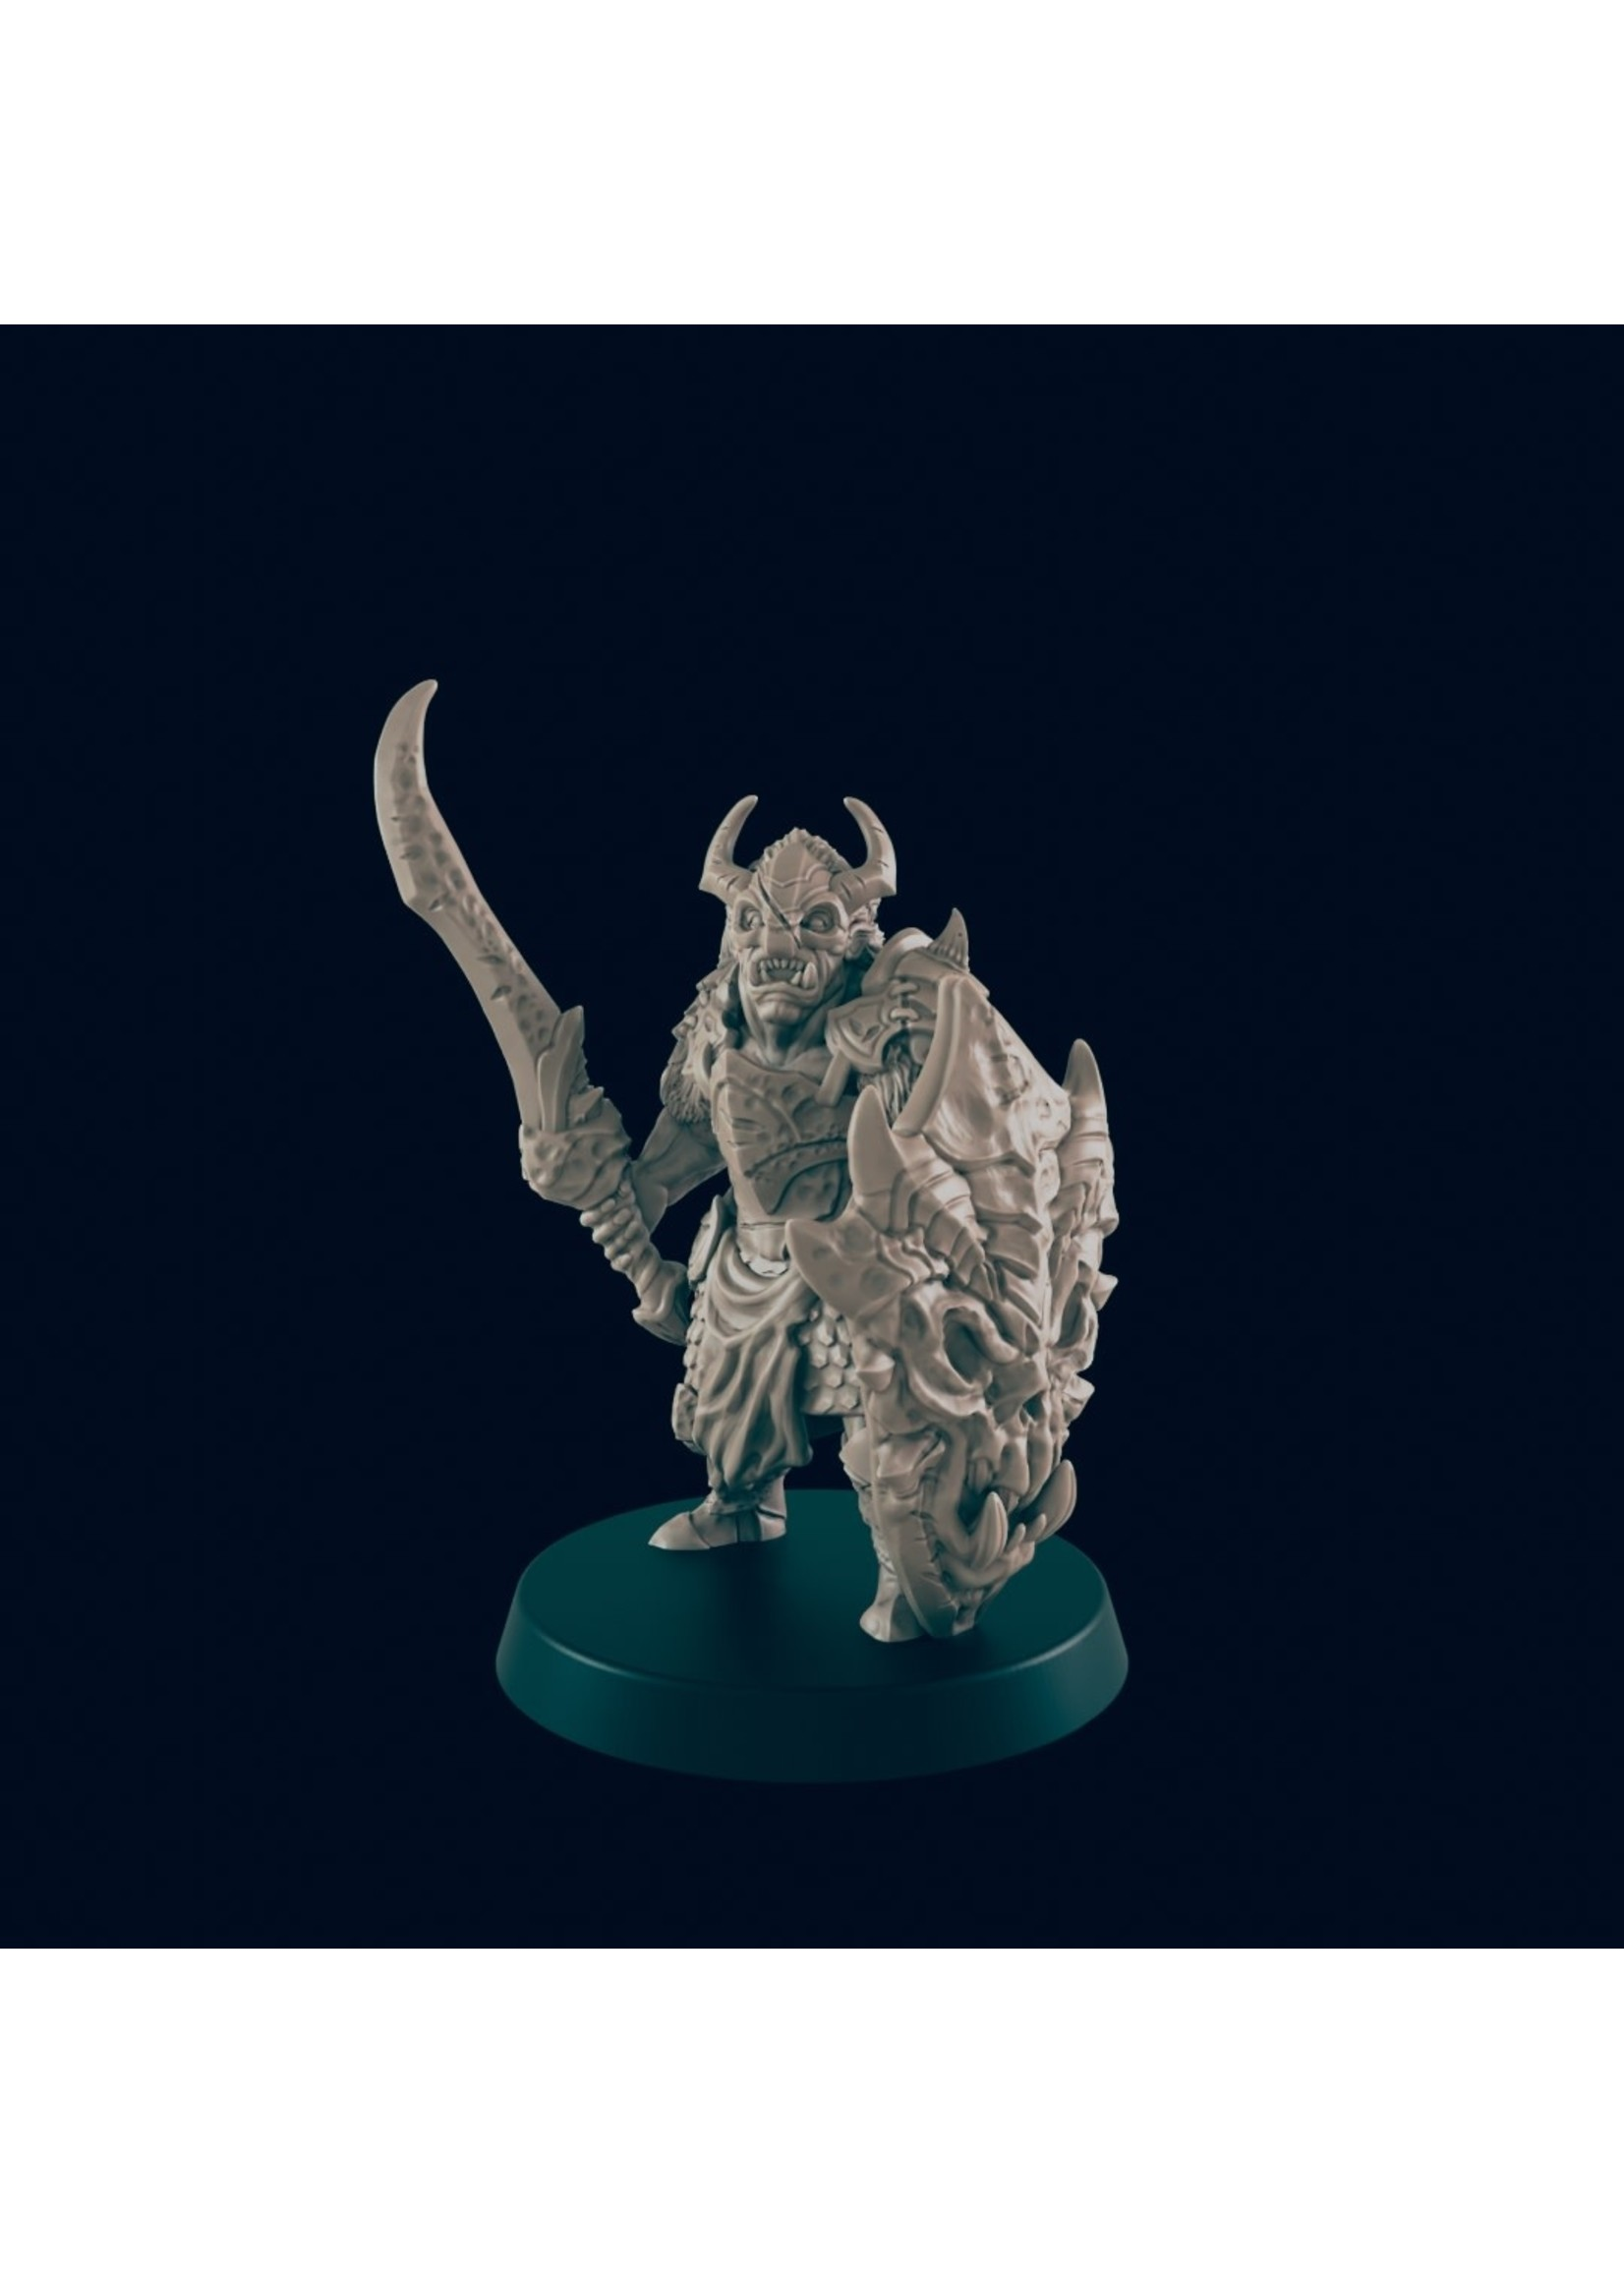 3D Printed Miniature - Orc Chieftain  - Dungeons & Dragons - Beasts and Baddies